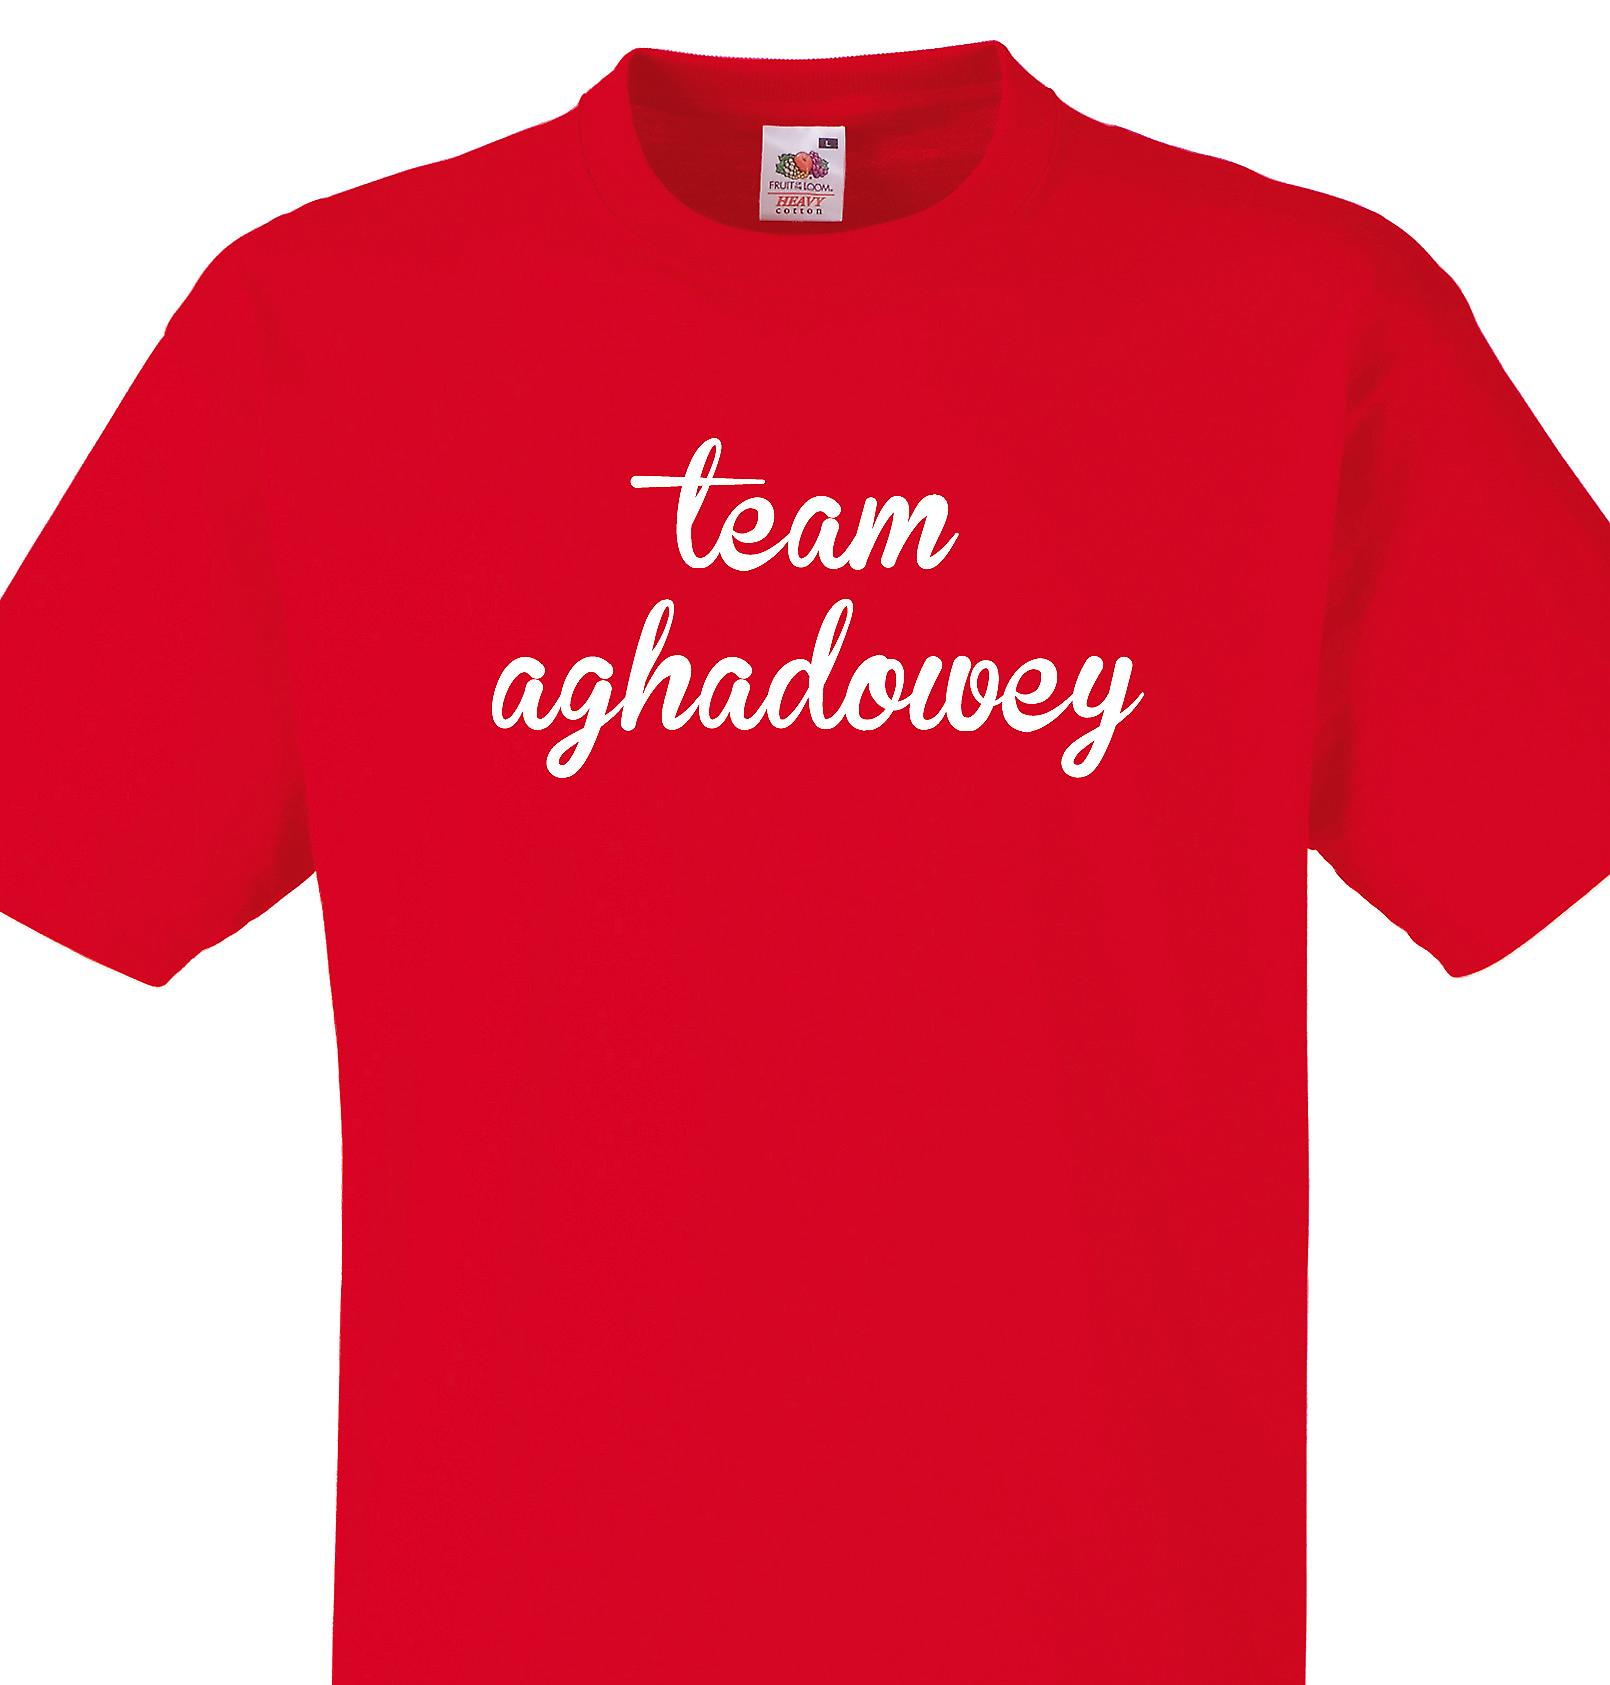 Team Aghadowey Red T shirt